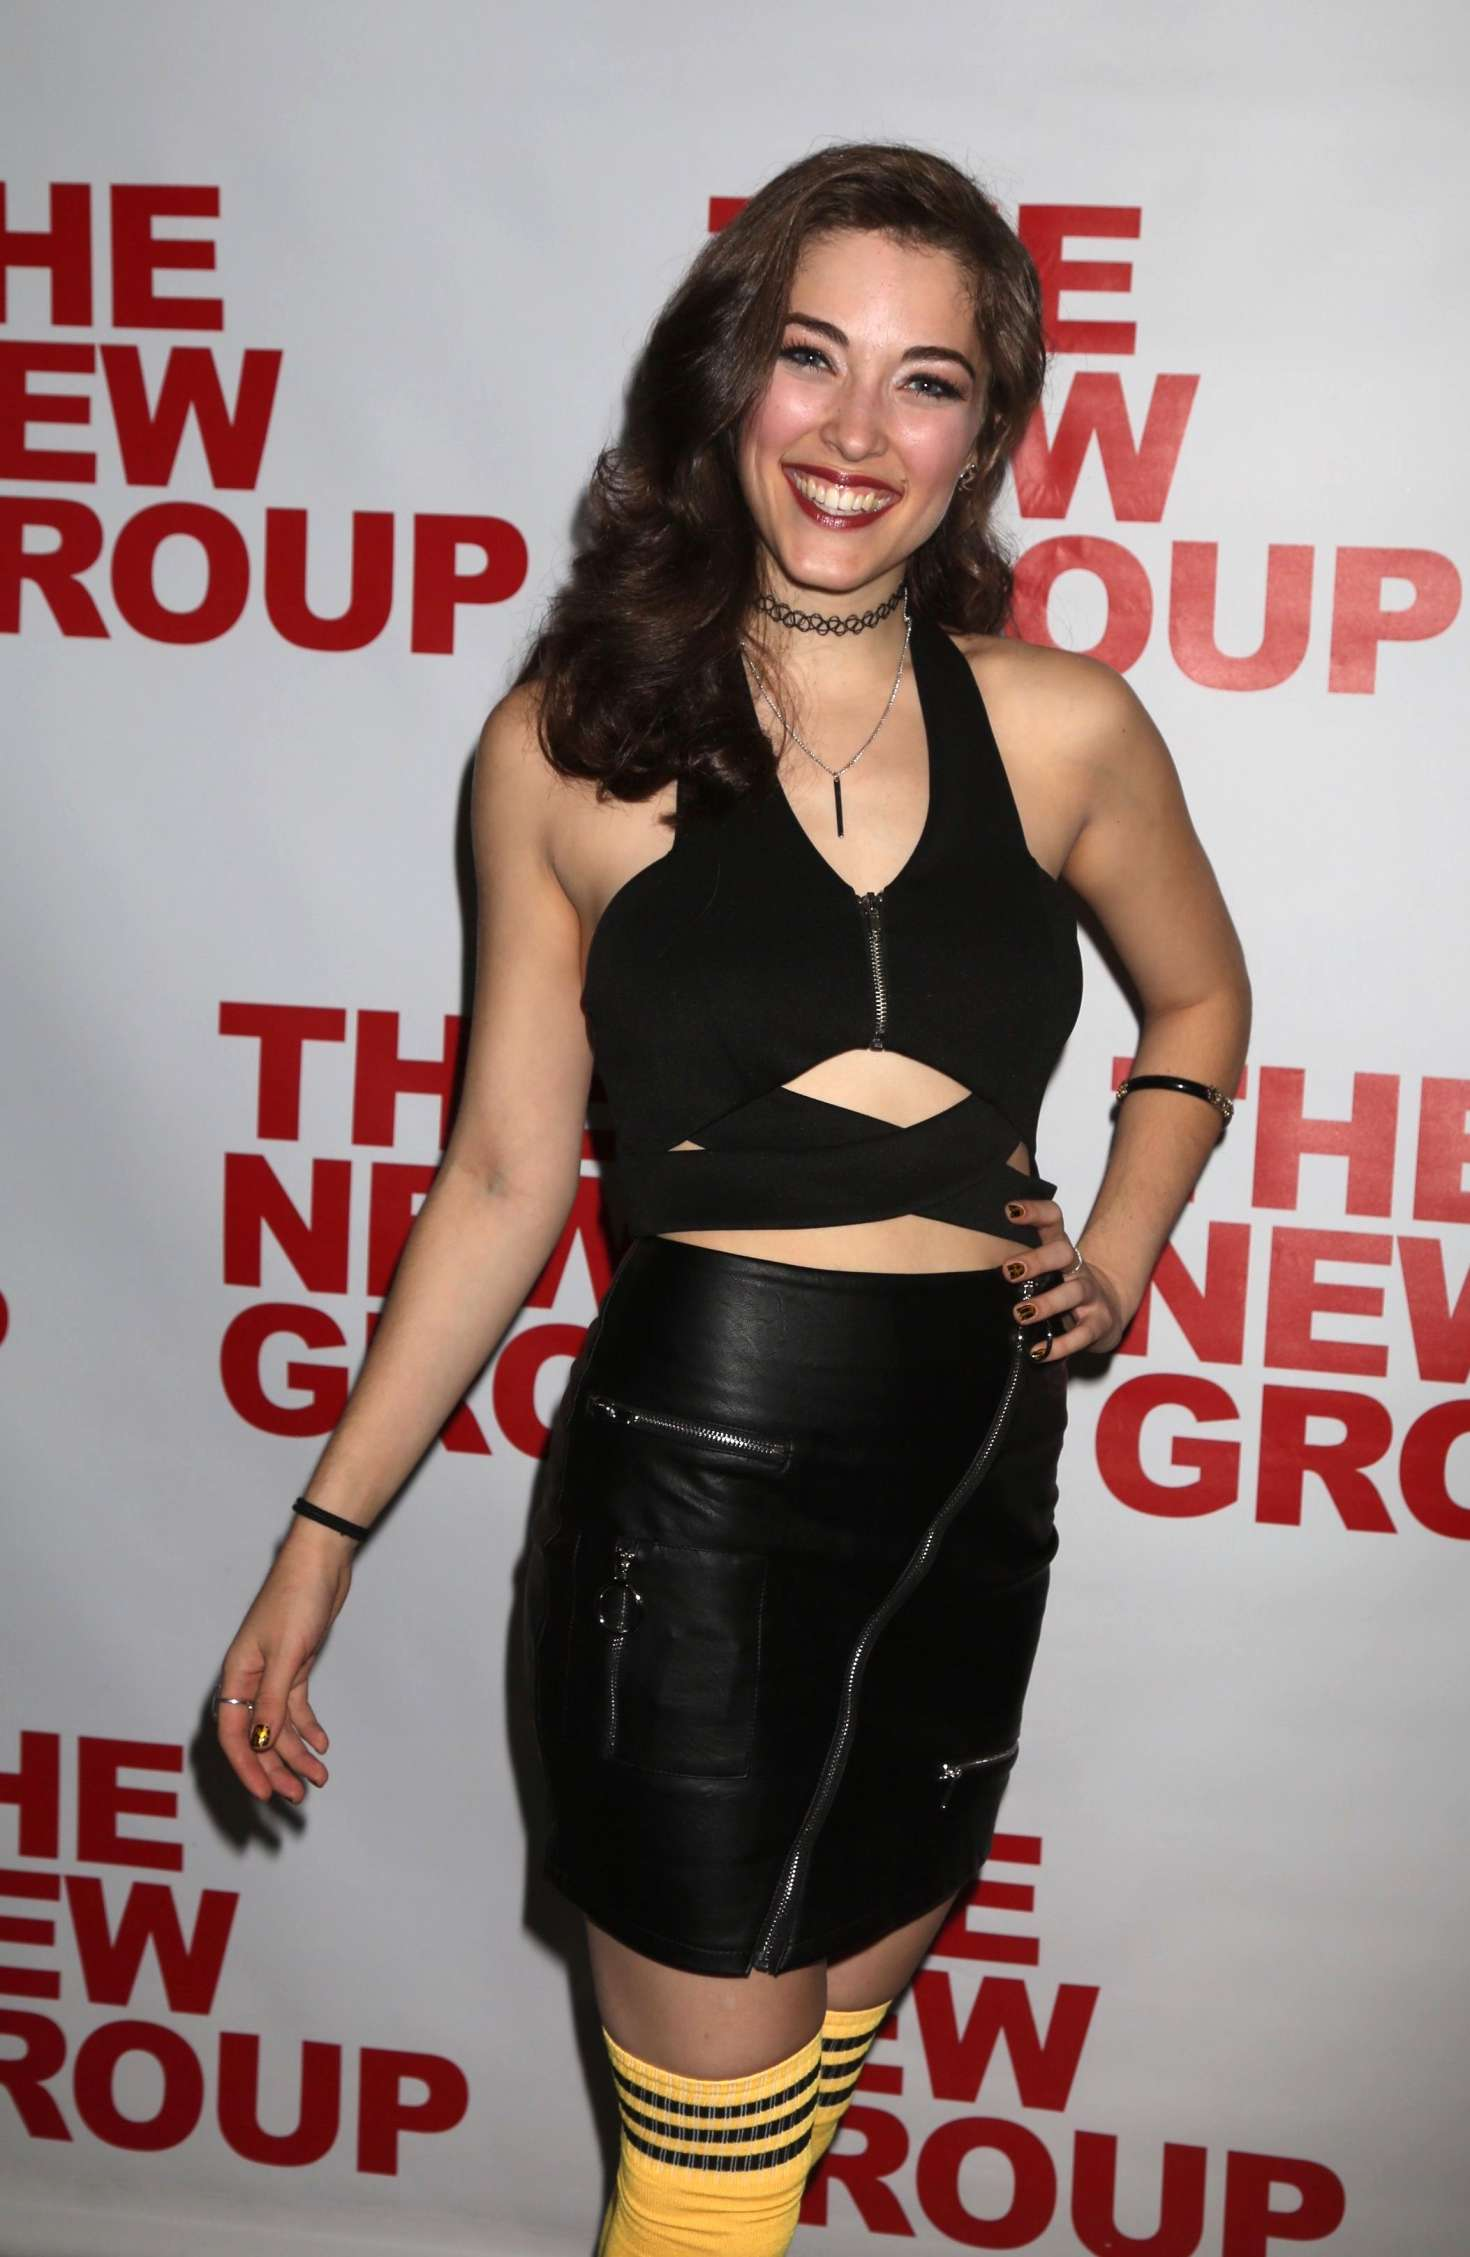 Tessa Grady - Opening Night party for Clueless The Musical in NY